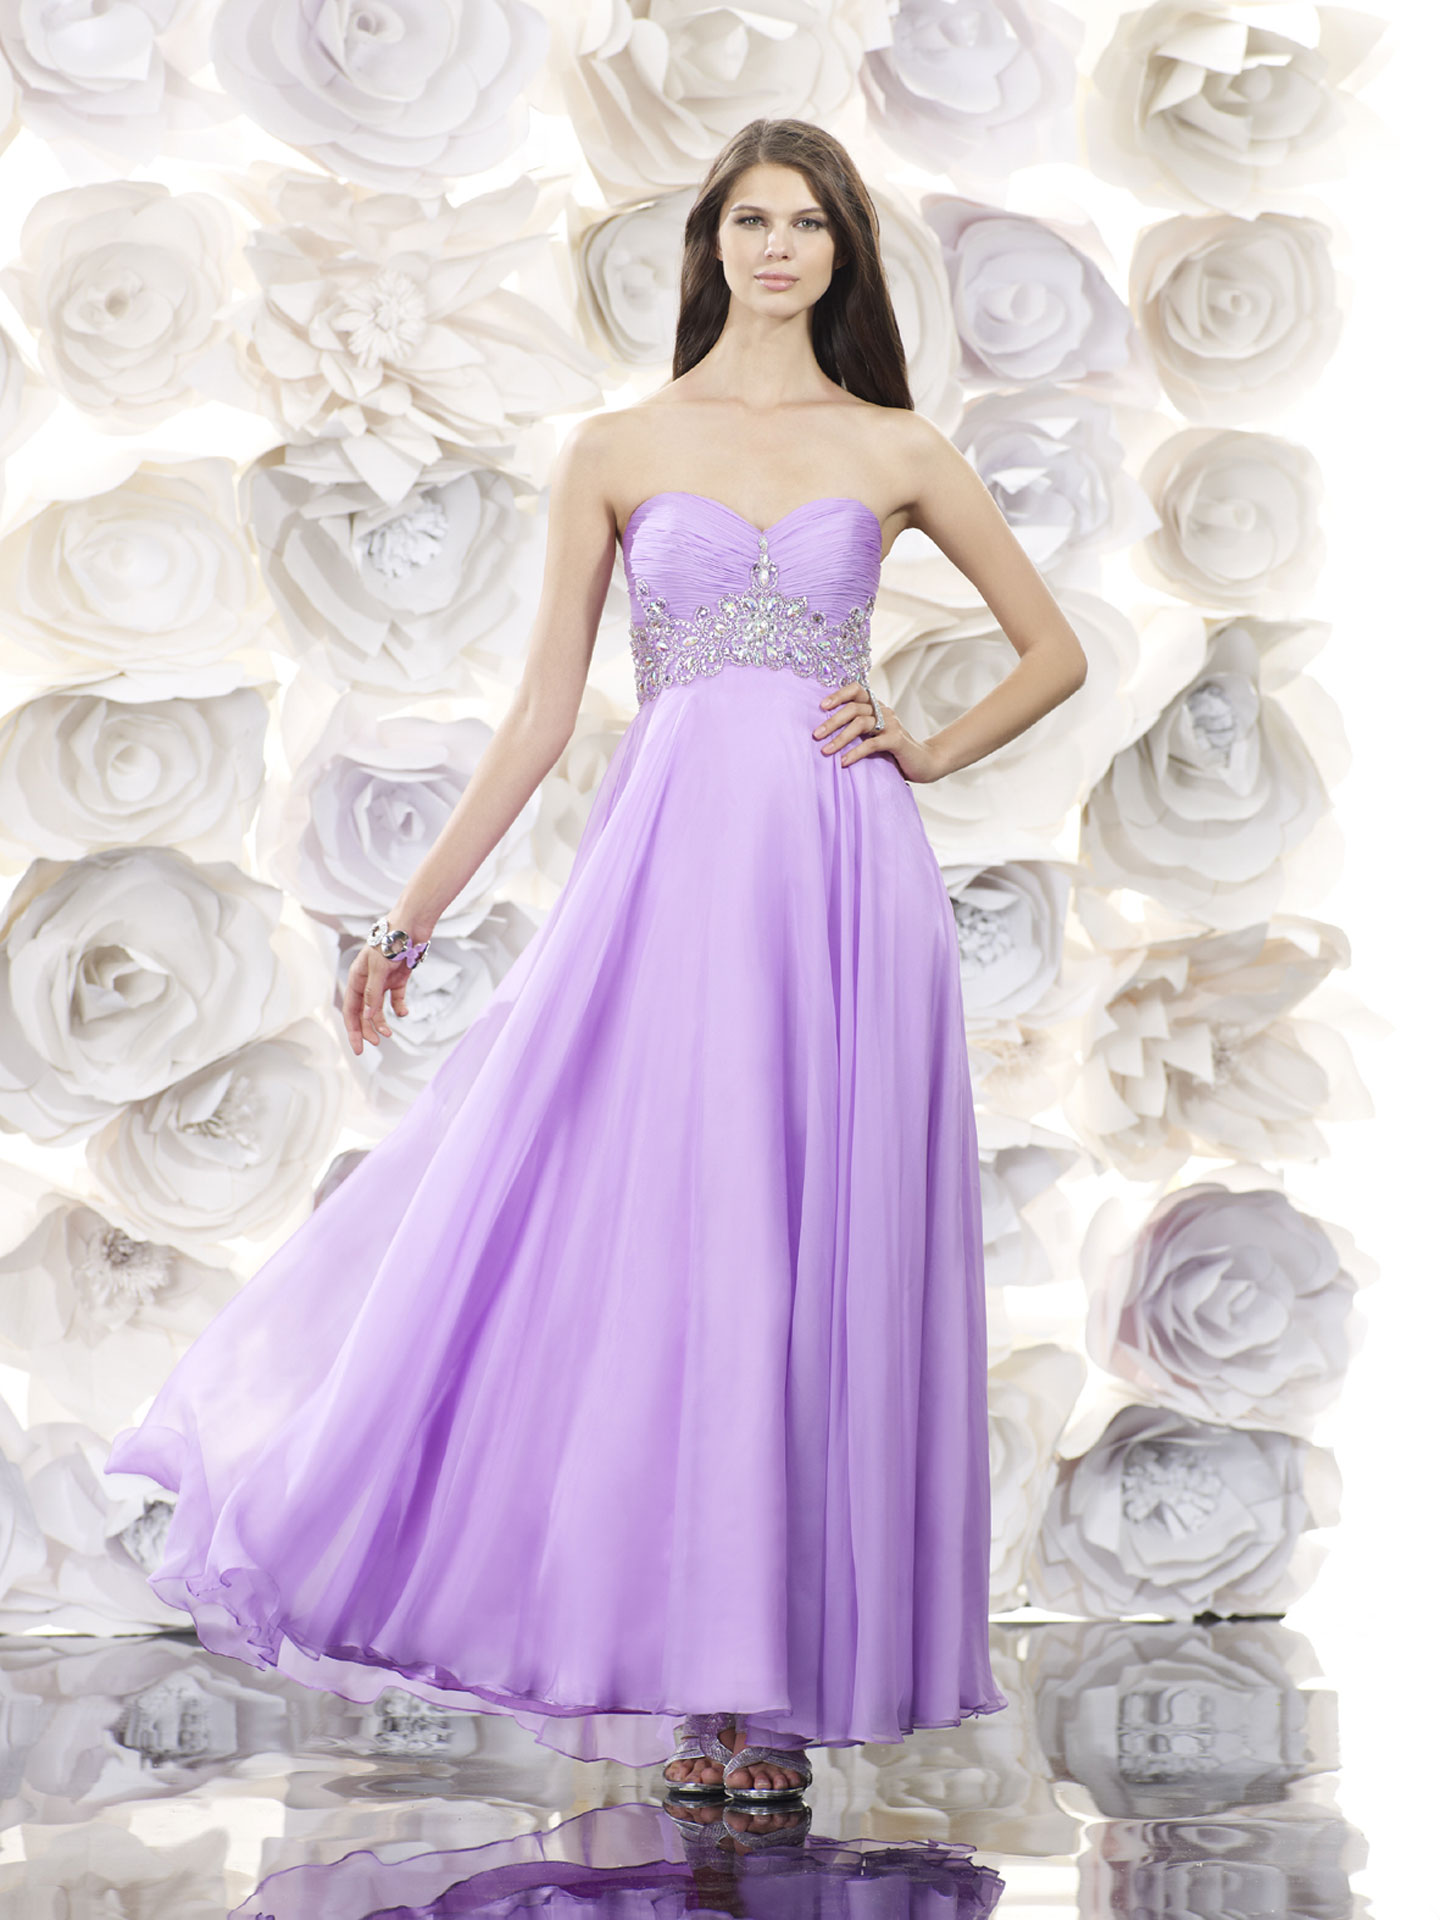 30 Prom Makeup Ideas To Have All Eyes On You: 30 Best Purple Prom Dresses 2016